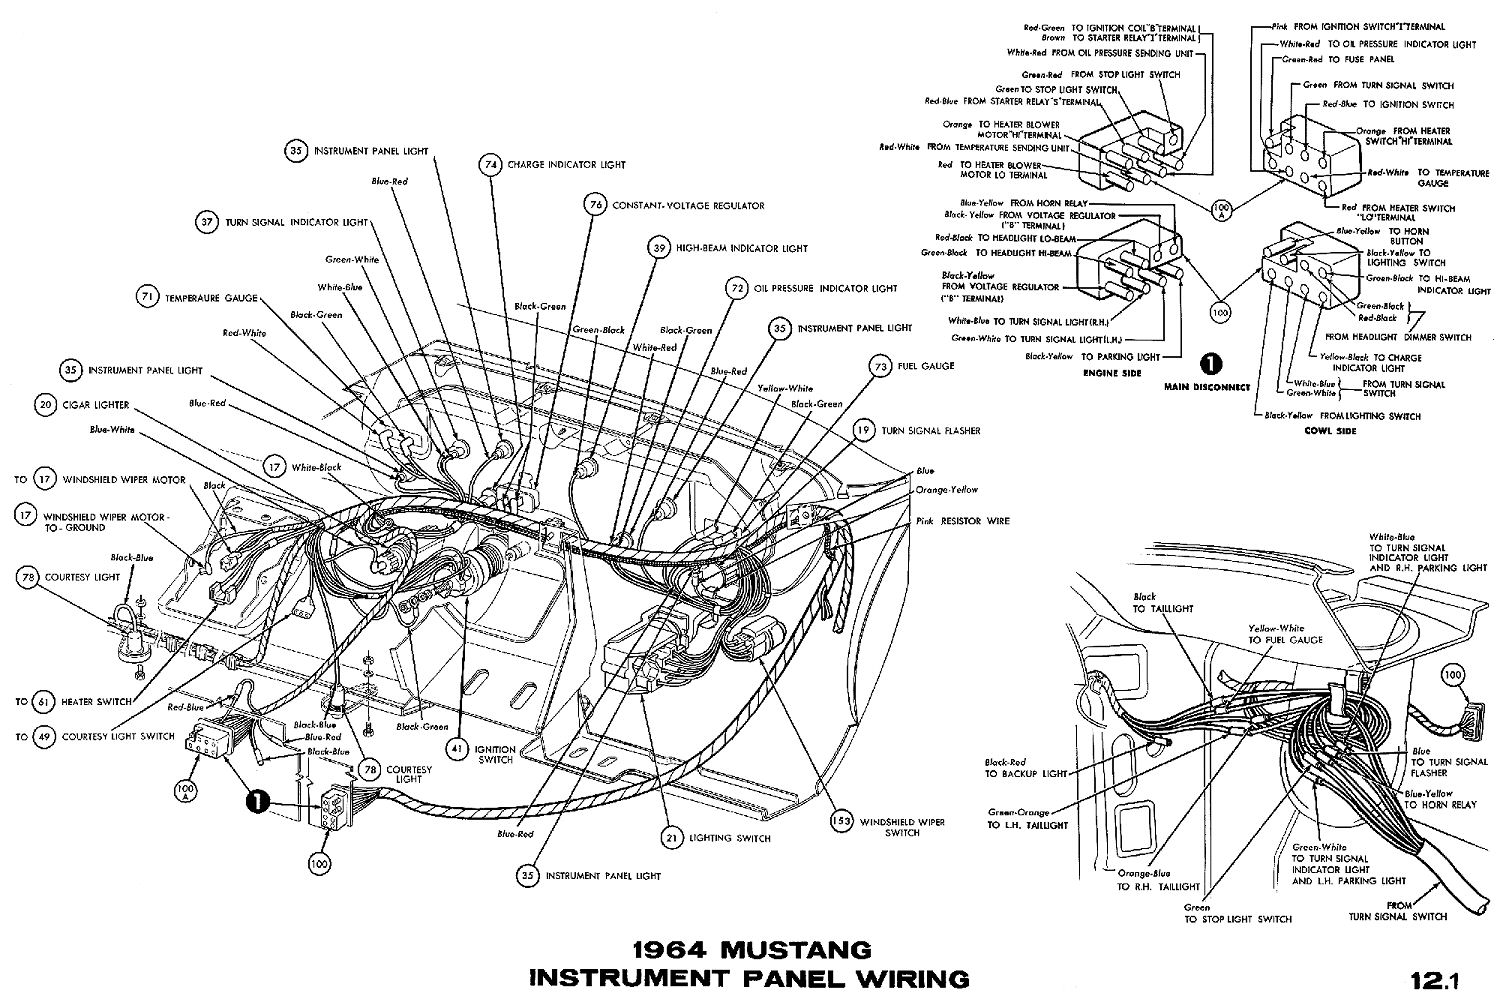 1964b 1969 mustang wiring diagram 1969 ranchero wiring diagram \u2022 wiring 1968 mustang tail light wiring diagram at bakdesigns.co